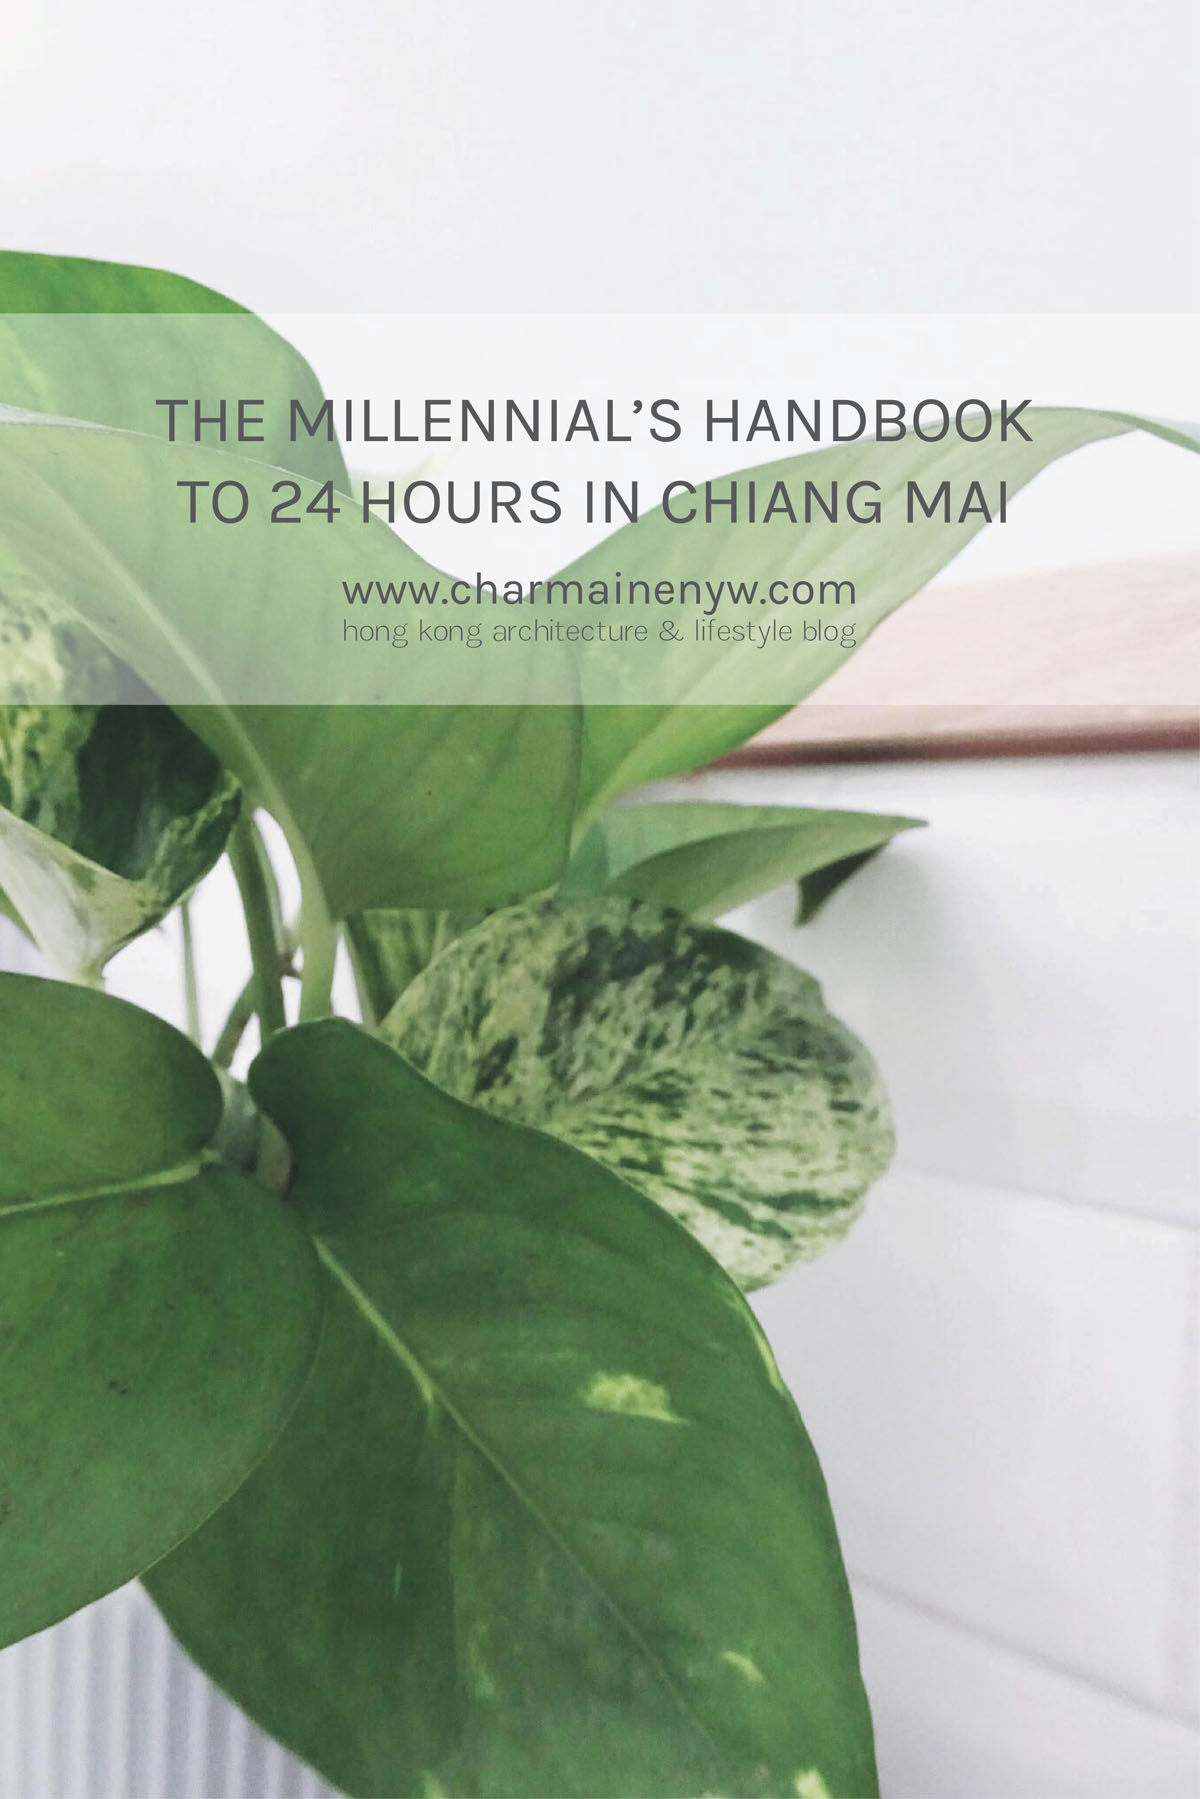 The Millennial's Handbook to 24 Hours in Chiang Mai